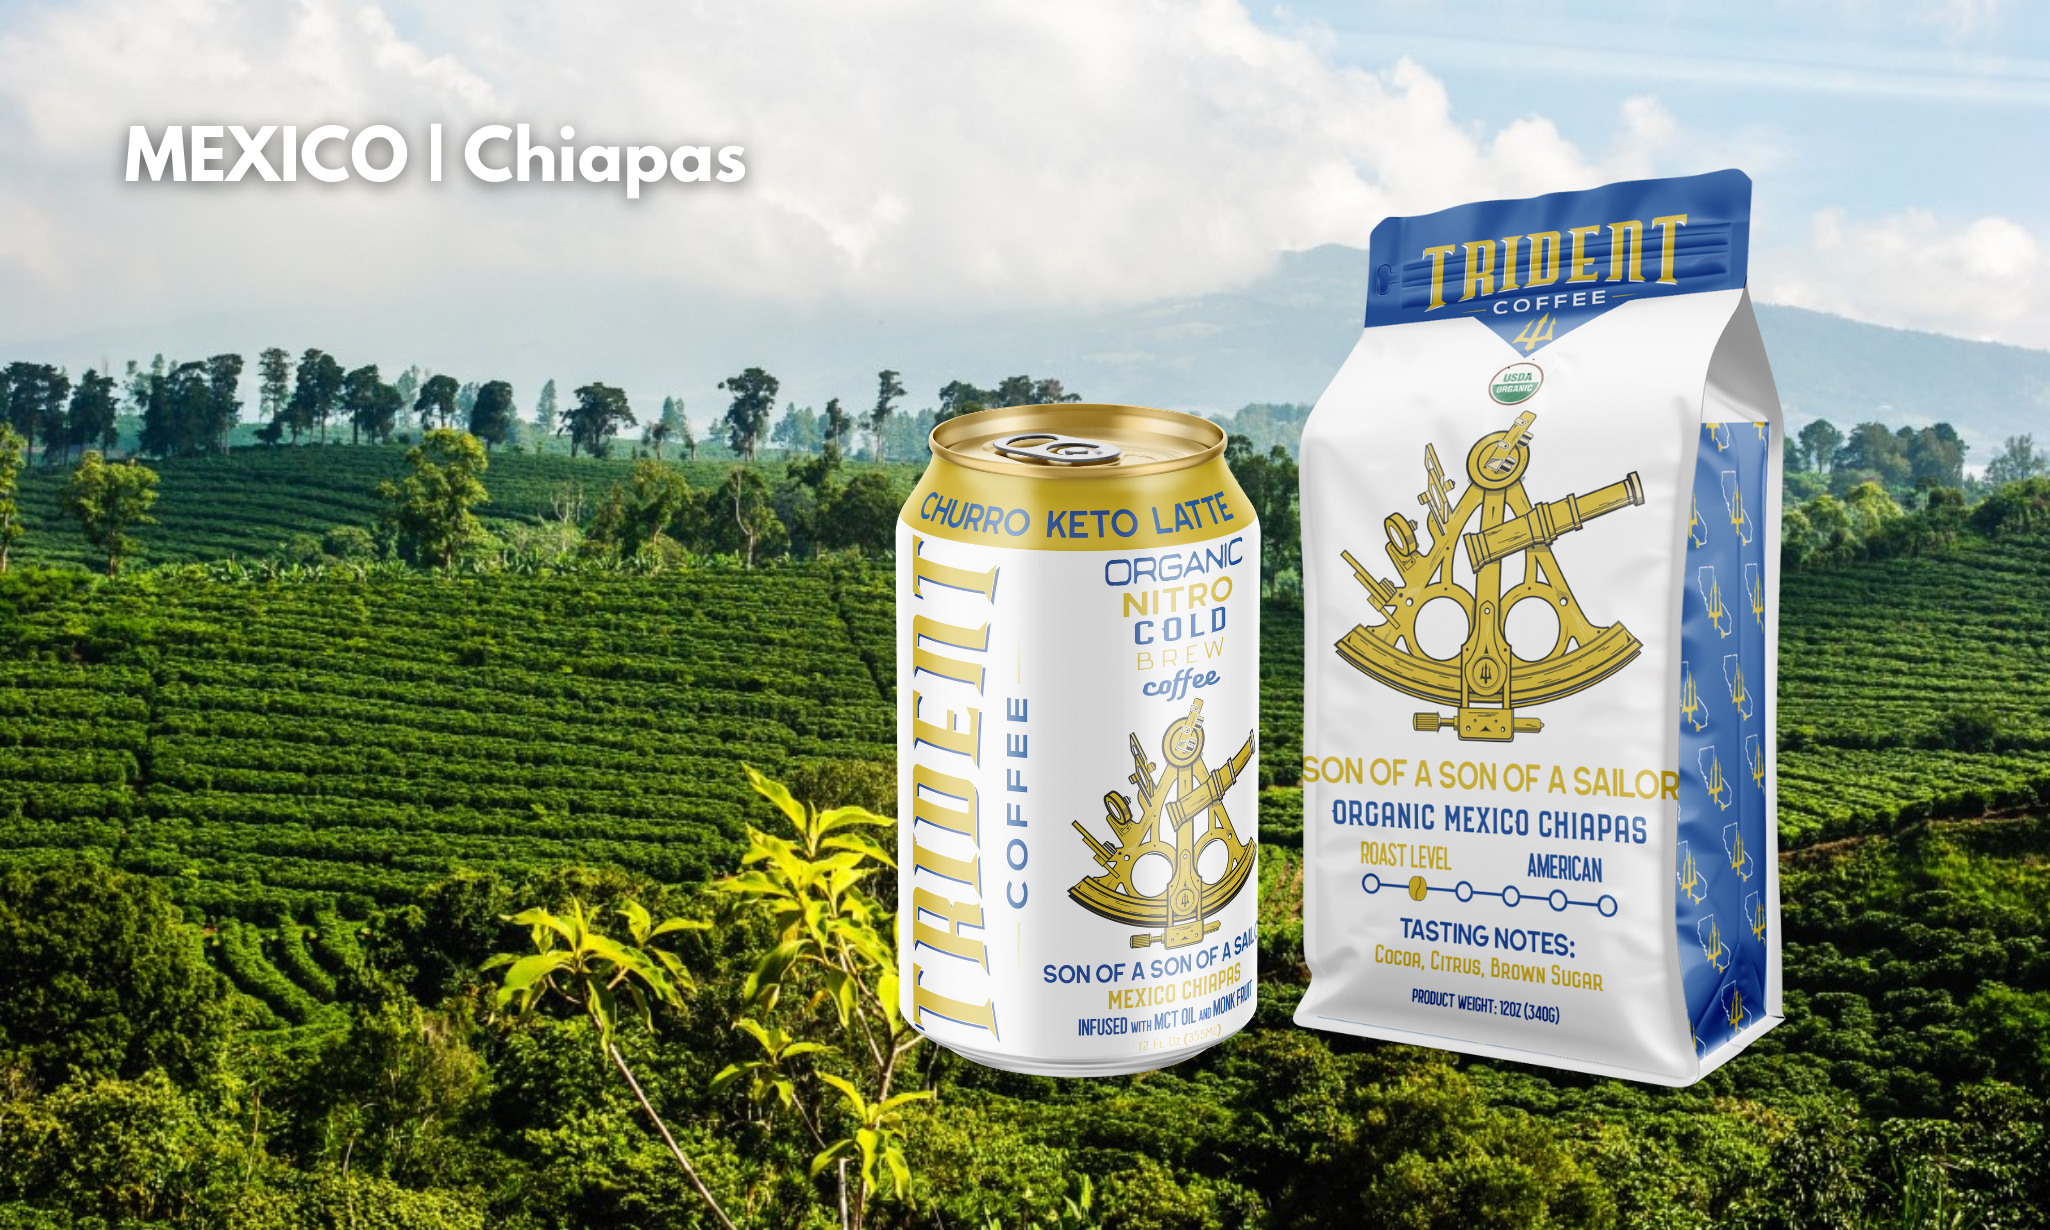 son of a son of a sailor - roasted coffee - cold brew - trident coffee - coffee farm